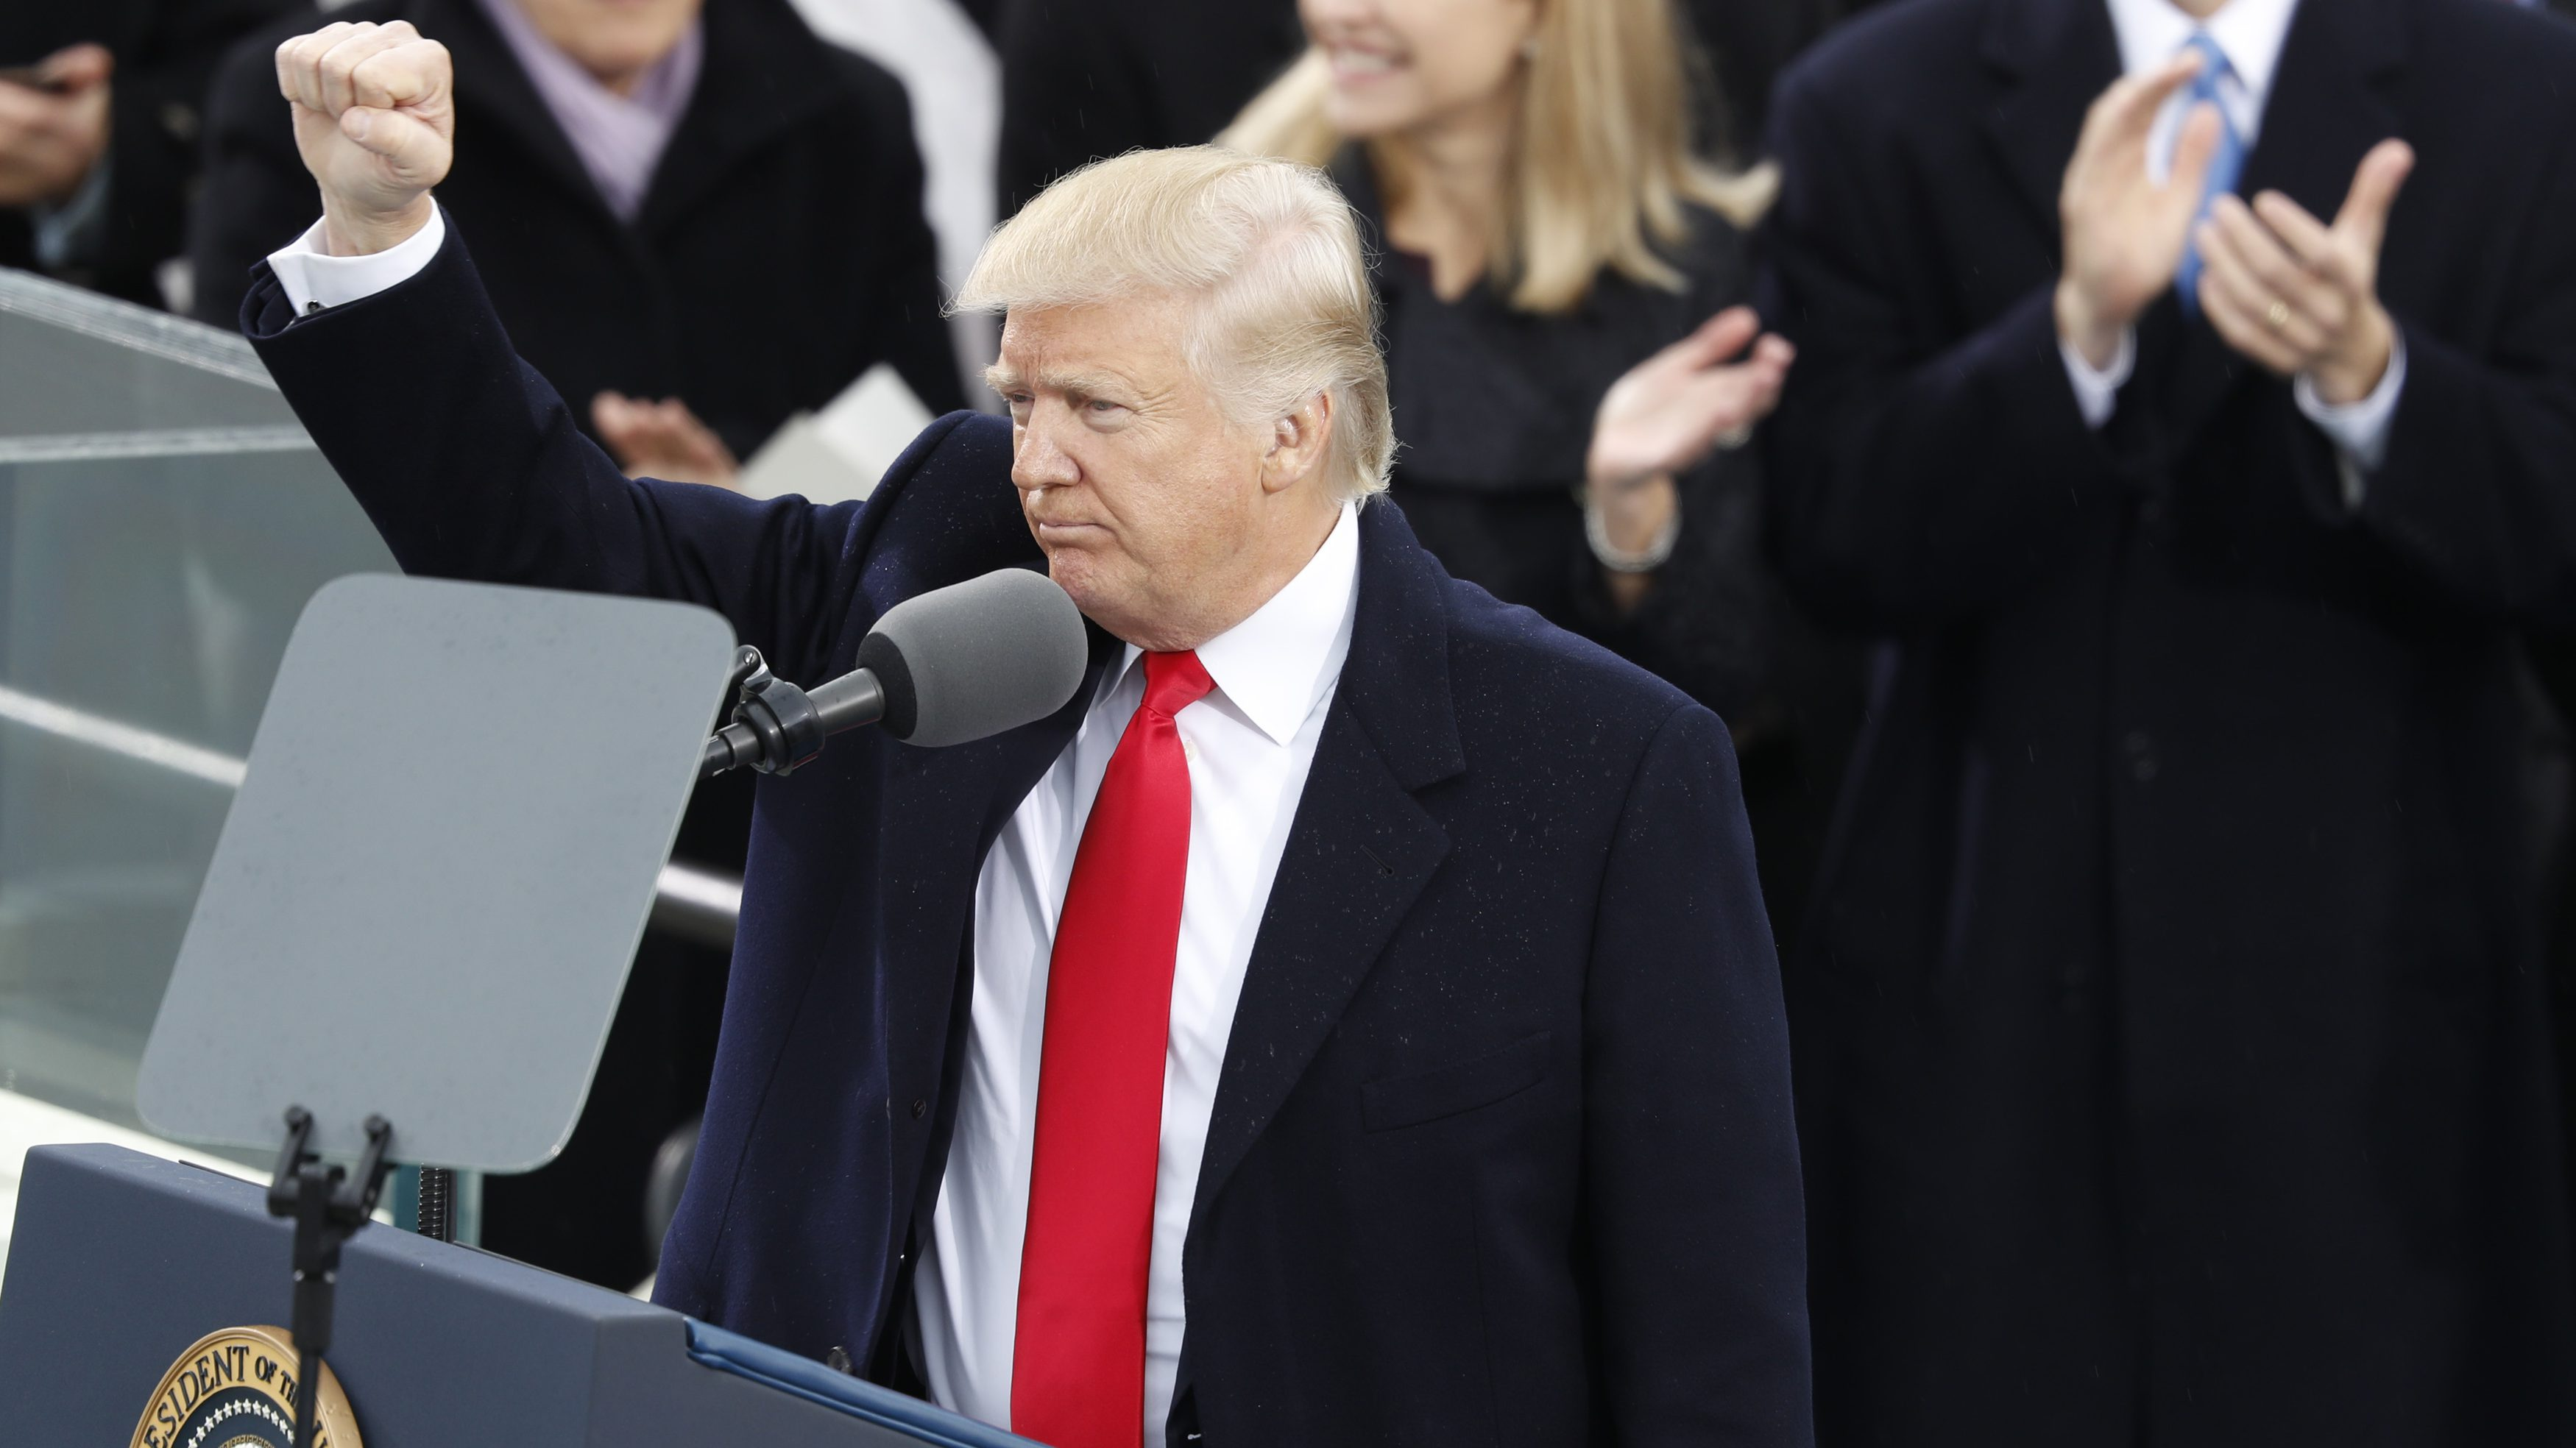 U.S. President Donald Trump gestures as he speaks after being sworn in as the 45th president of the United States on the West front of the U.S. Capitol in Washington, U.S., January 20, 2017.  REUTERS/Lucy Nicholson - RTSWKBQ